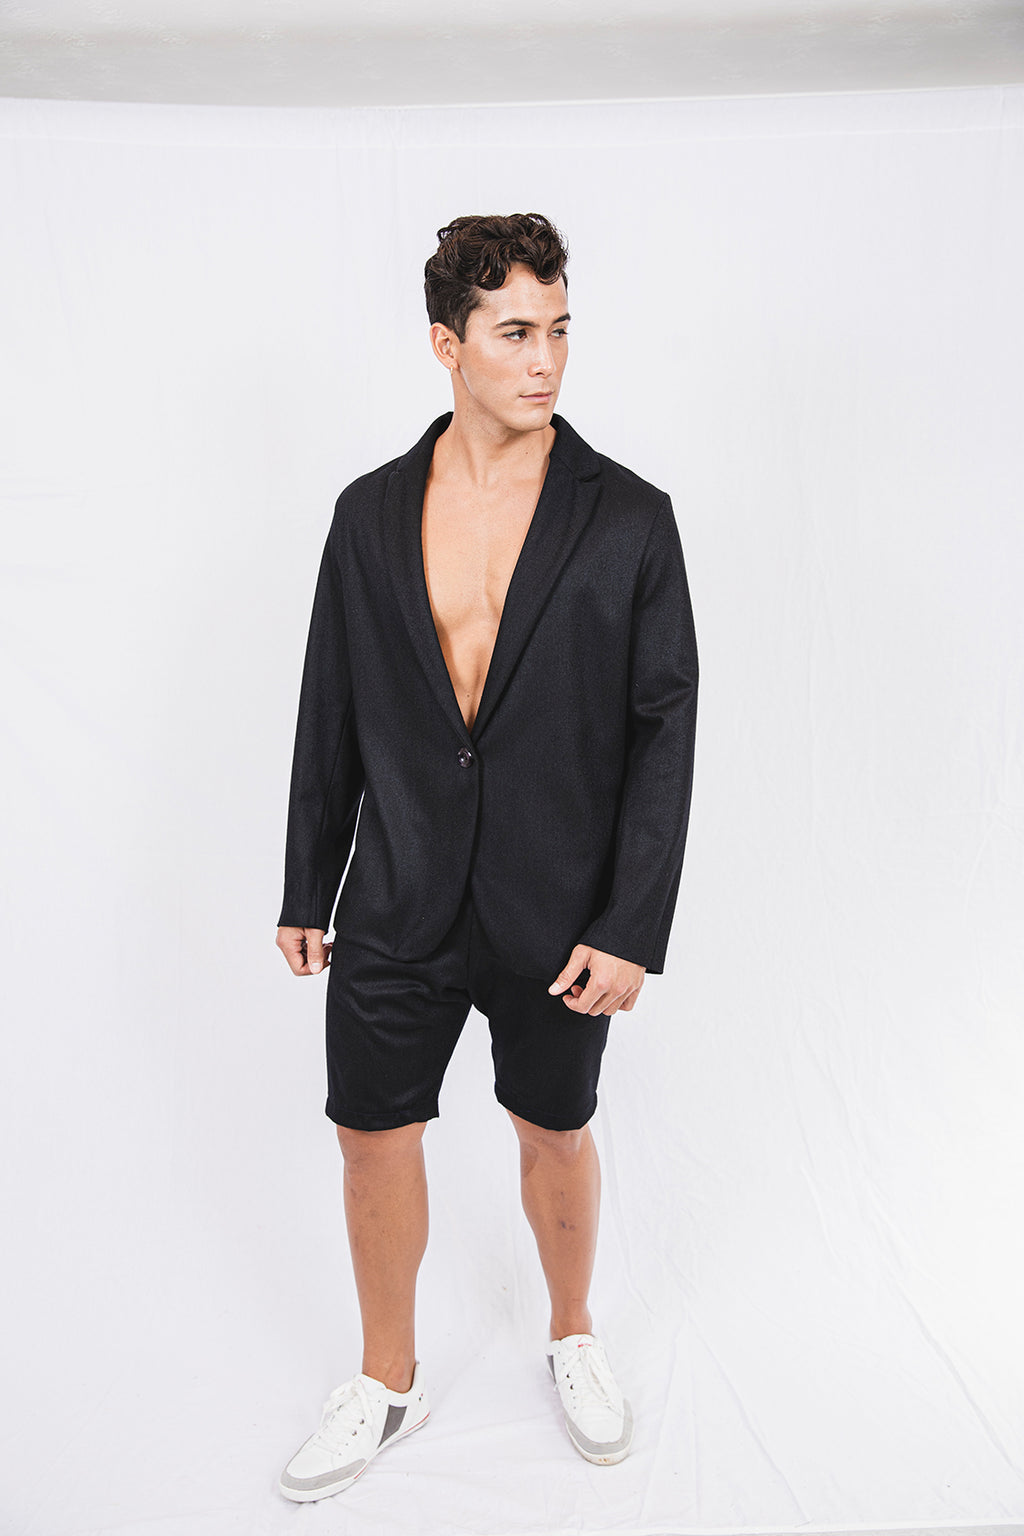 Christopher Lee Twill Black Shorts